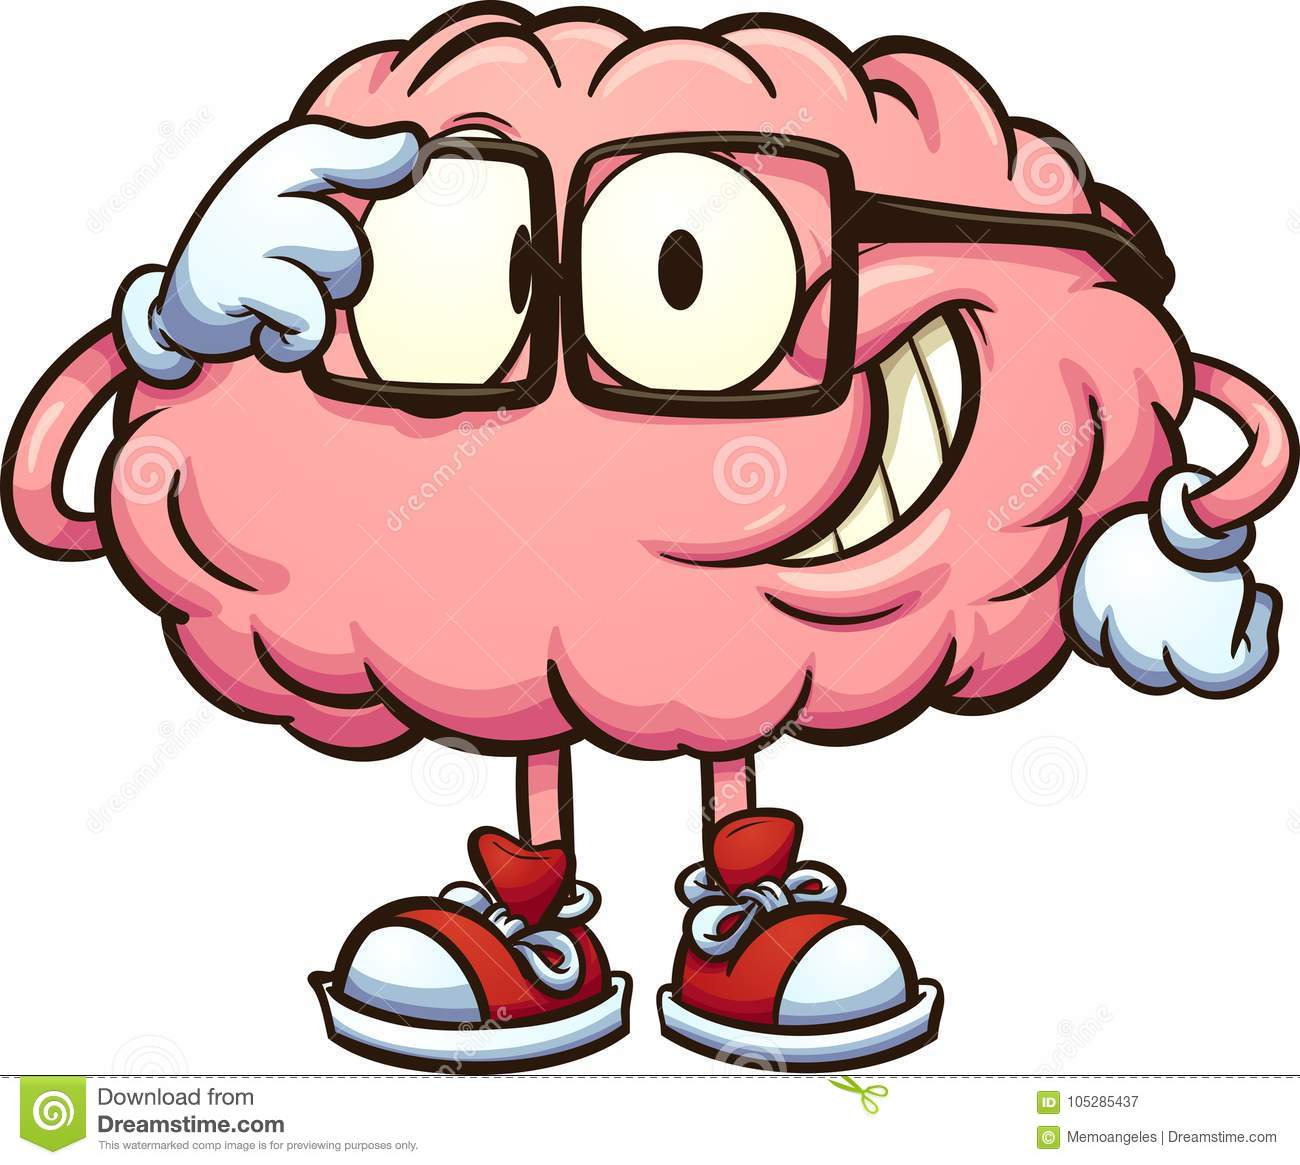 nerdy cartoon brain with glasses stock vector illustration of rh dreamstime com Funny Brain Clip Art Funny Brain Clip Art